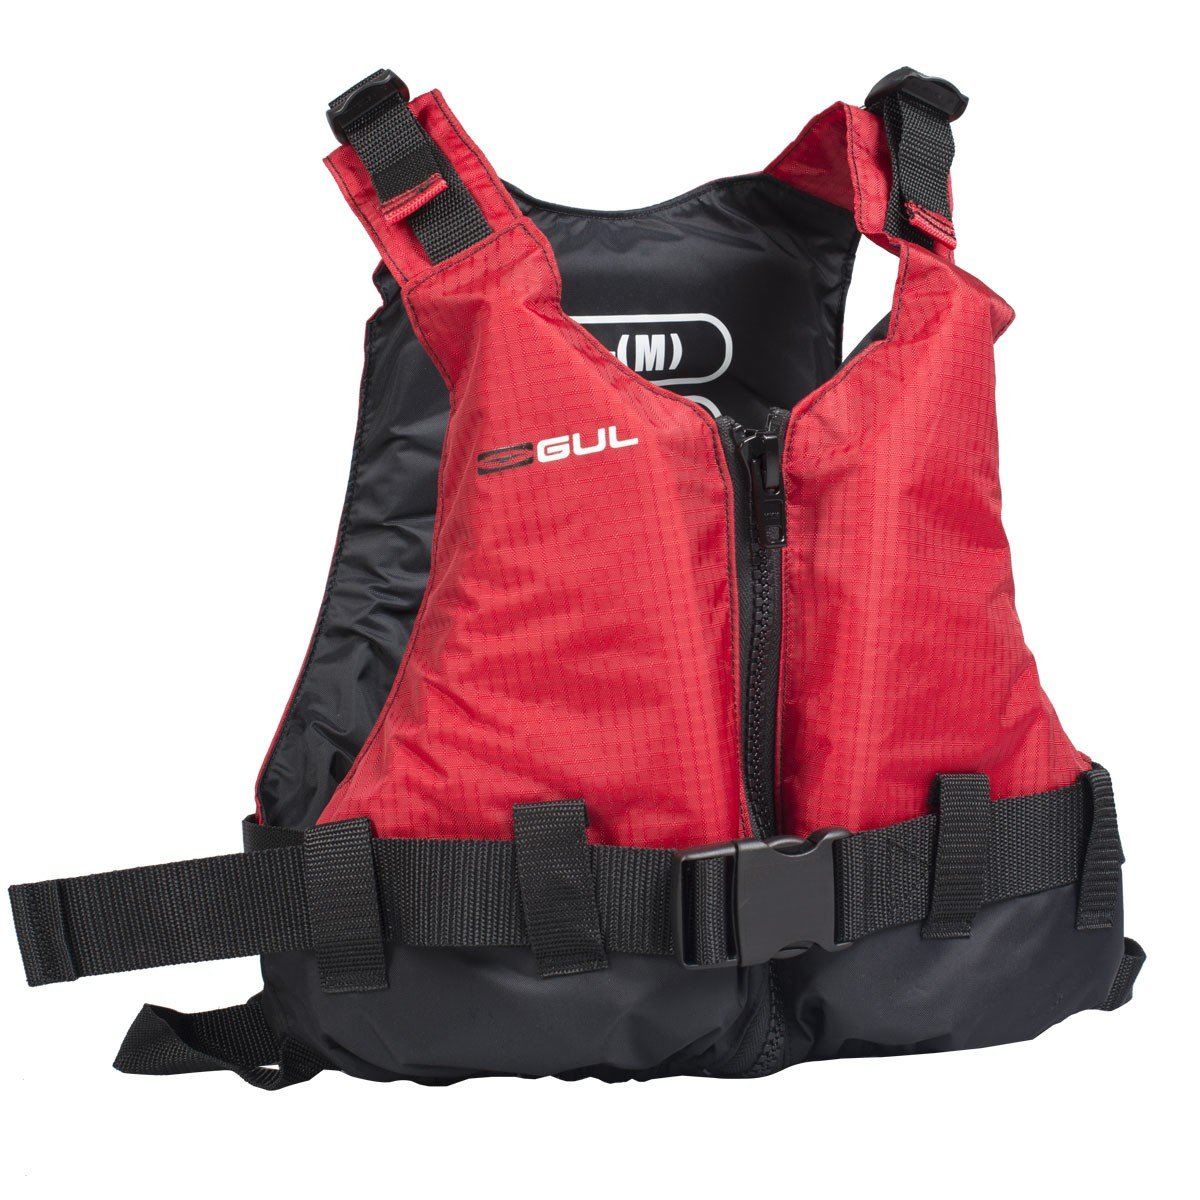 Gul Recreation Vest       Gk0007-A5